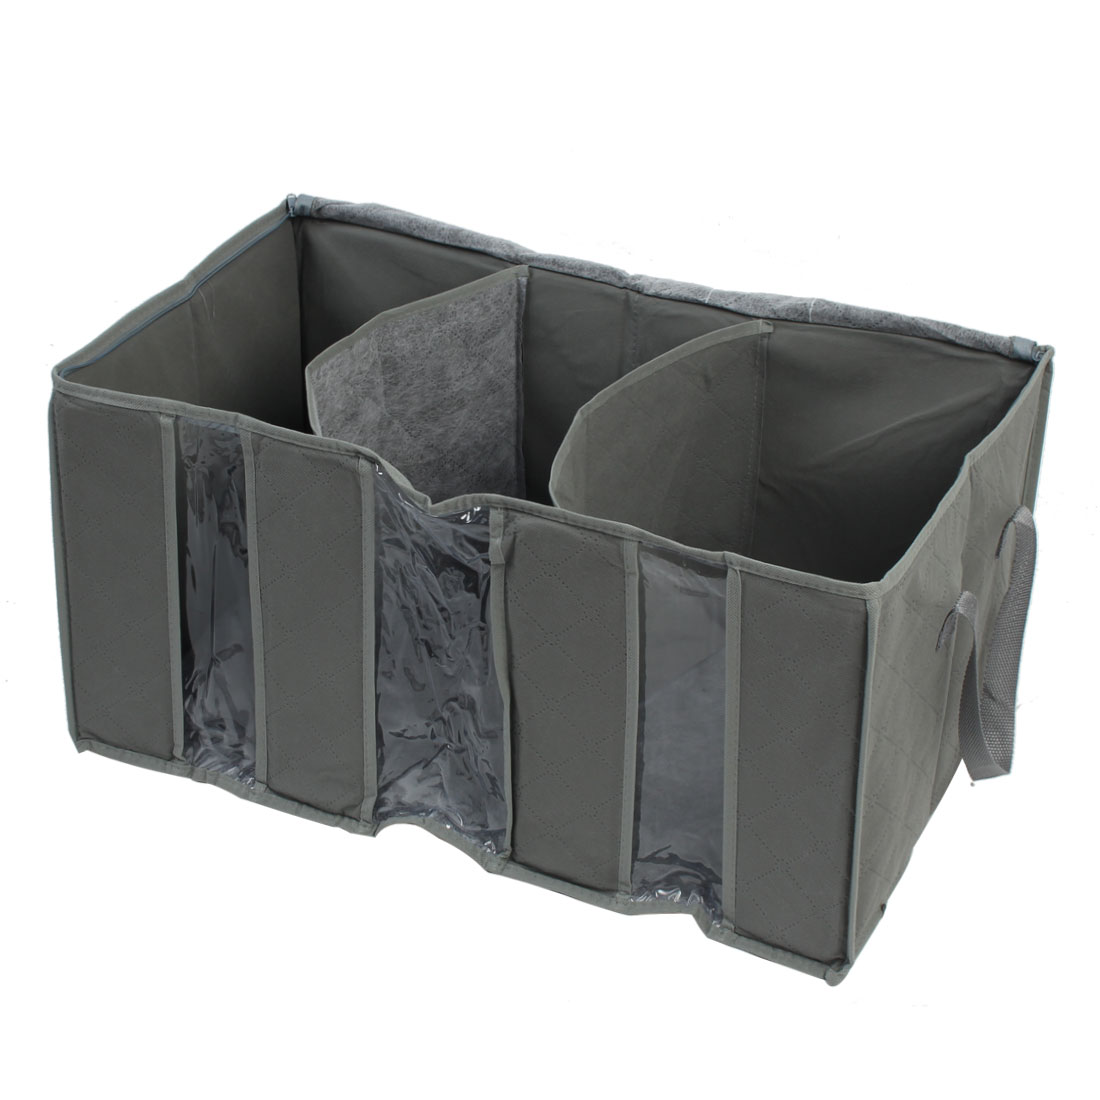 Folding Clothes Sundries Quilt Organizing Box Case Storage Bag Container Holder